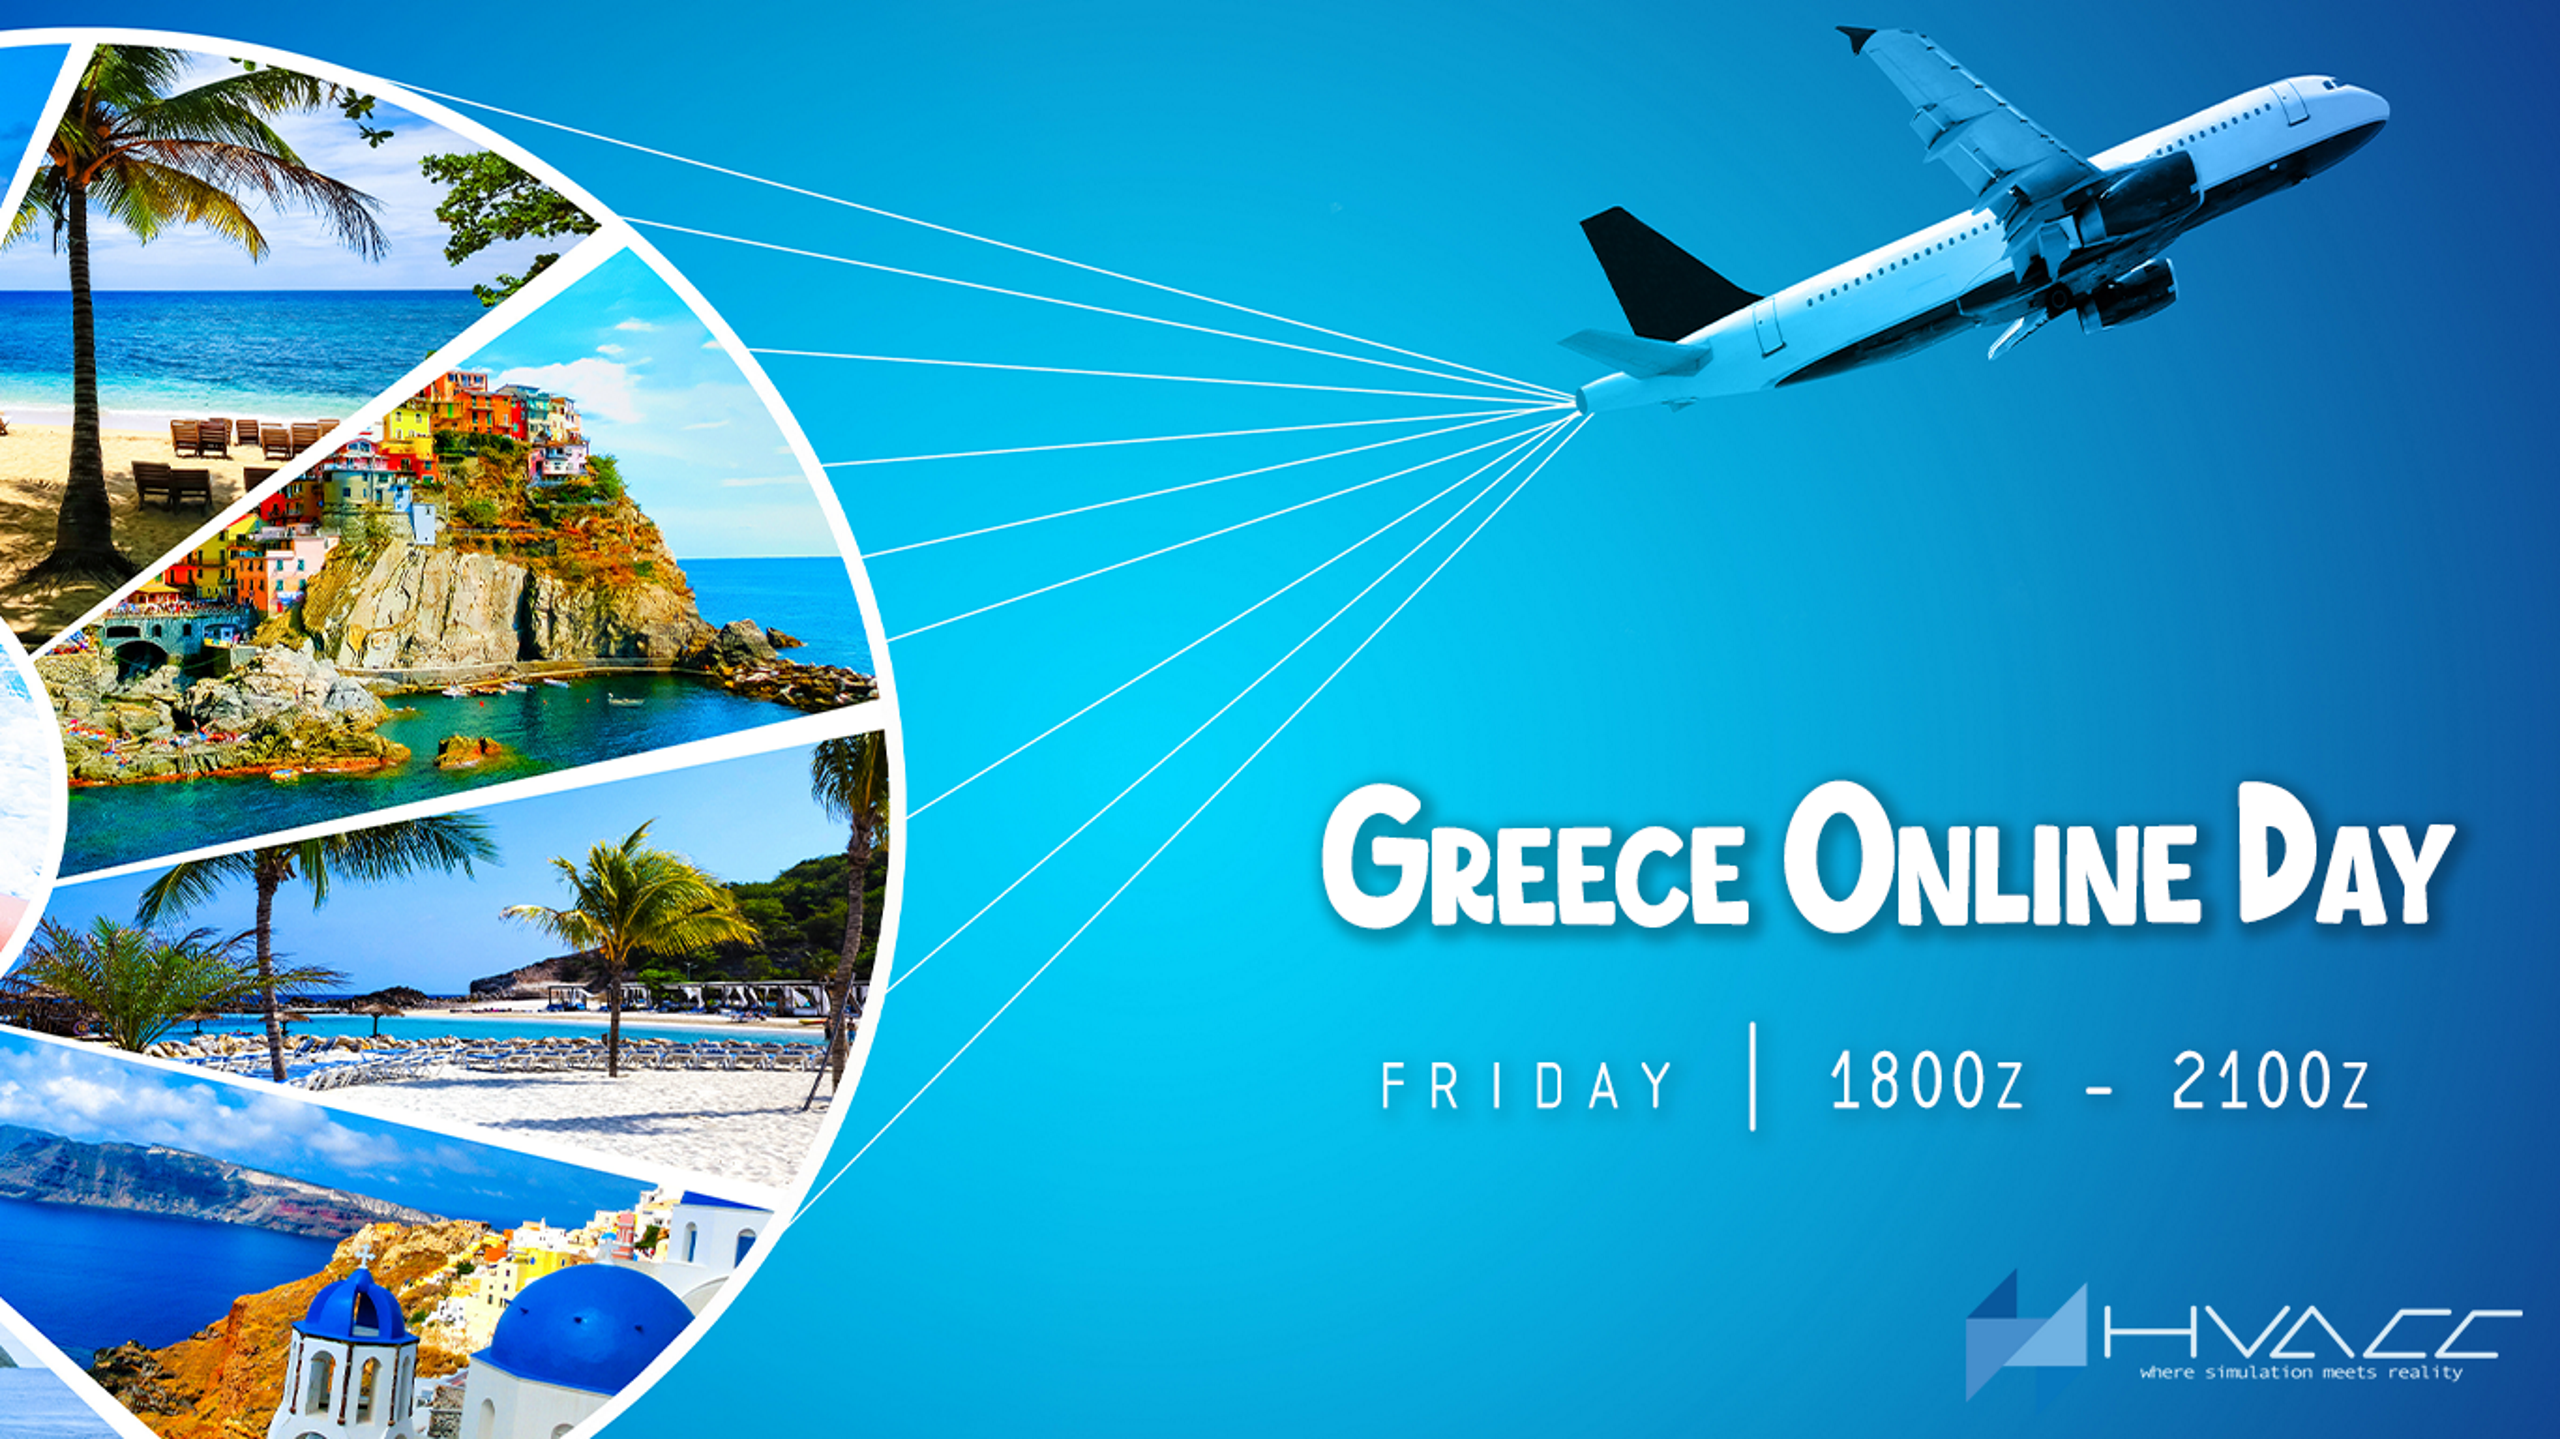 Greece Online Day | Every Other Friday 20:00 - 23:00 local